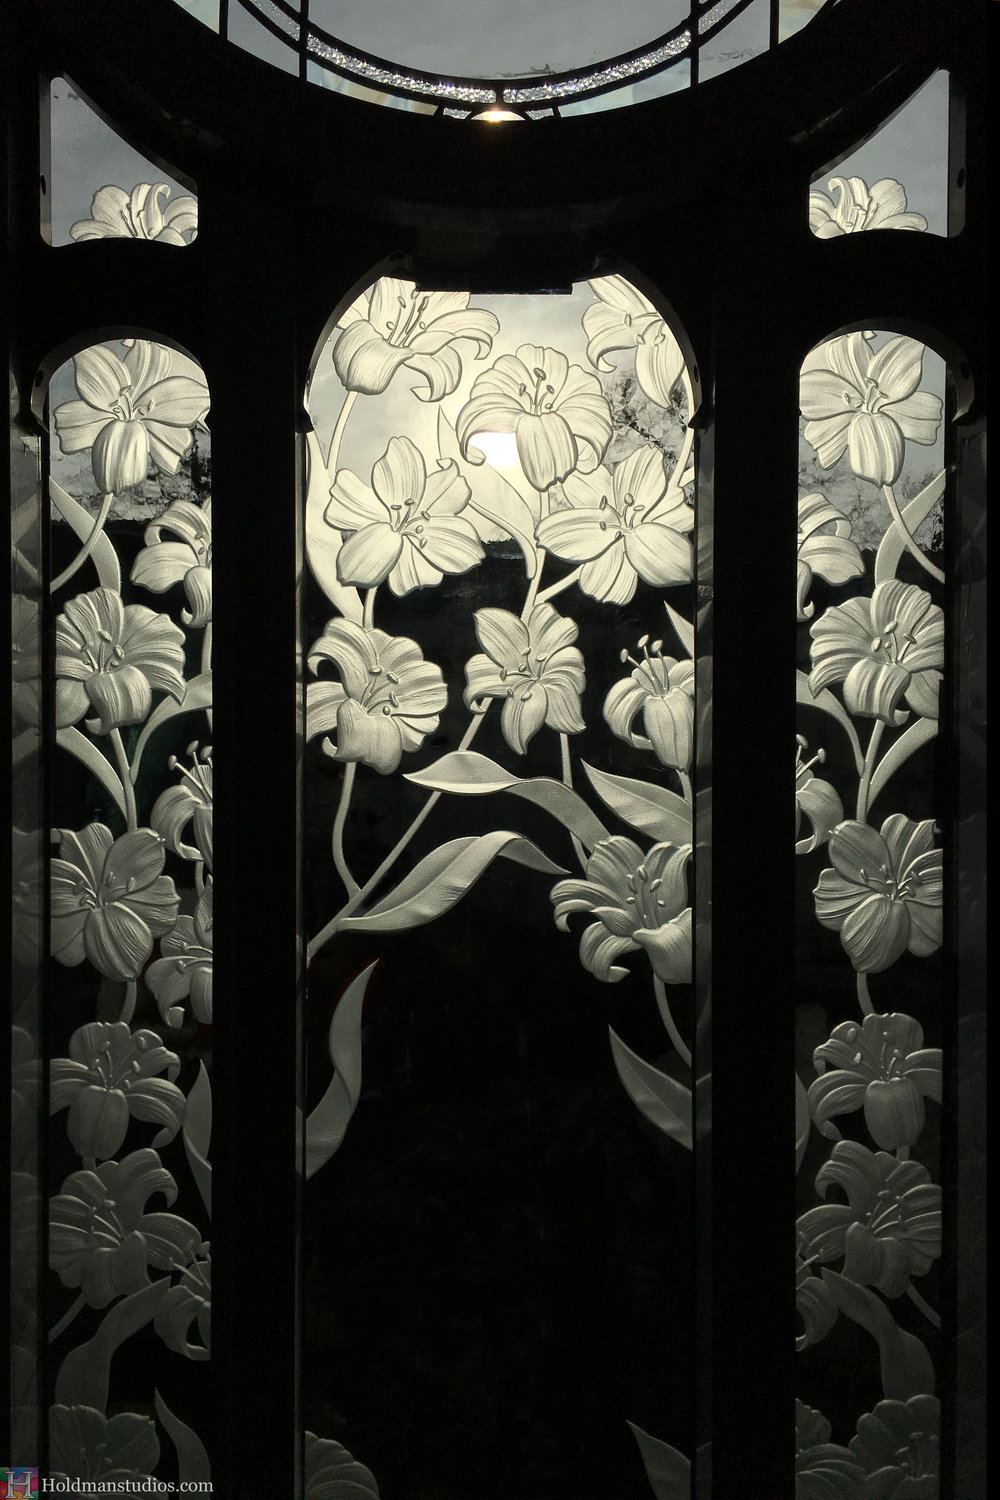 Holdman-Studios-Stained-Etched-Glass-Paris-LDS-Temple-Martagon-Madonna-Lily-Flowers-Leaves-Window.jpg